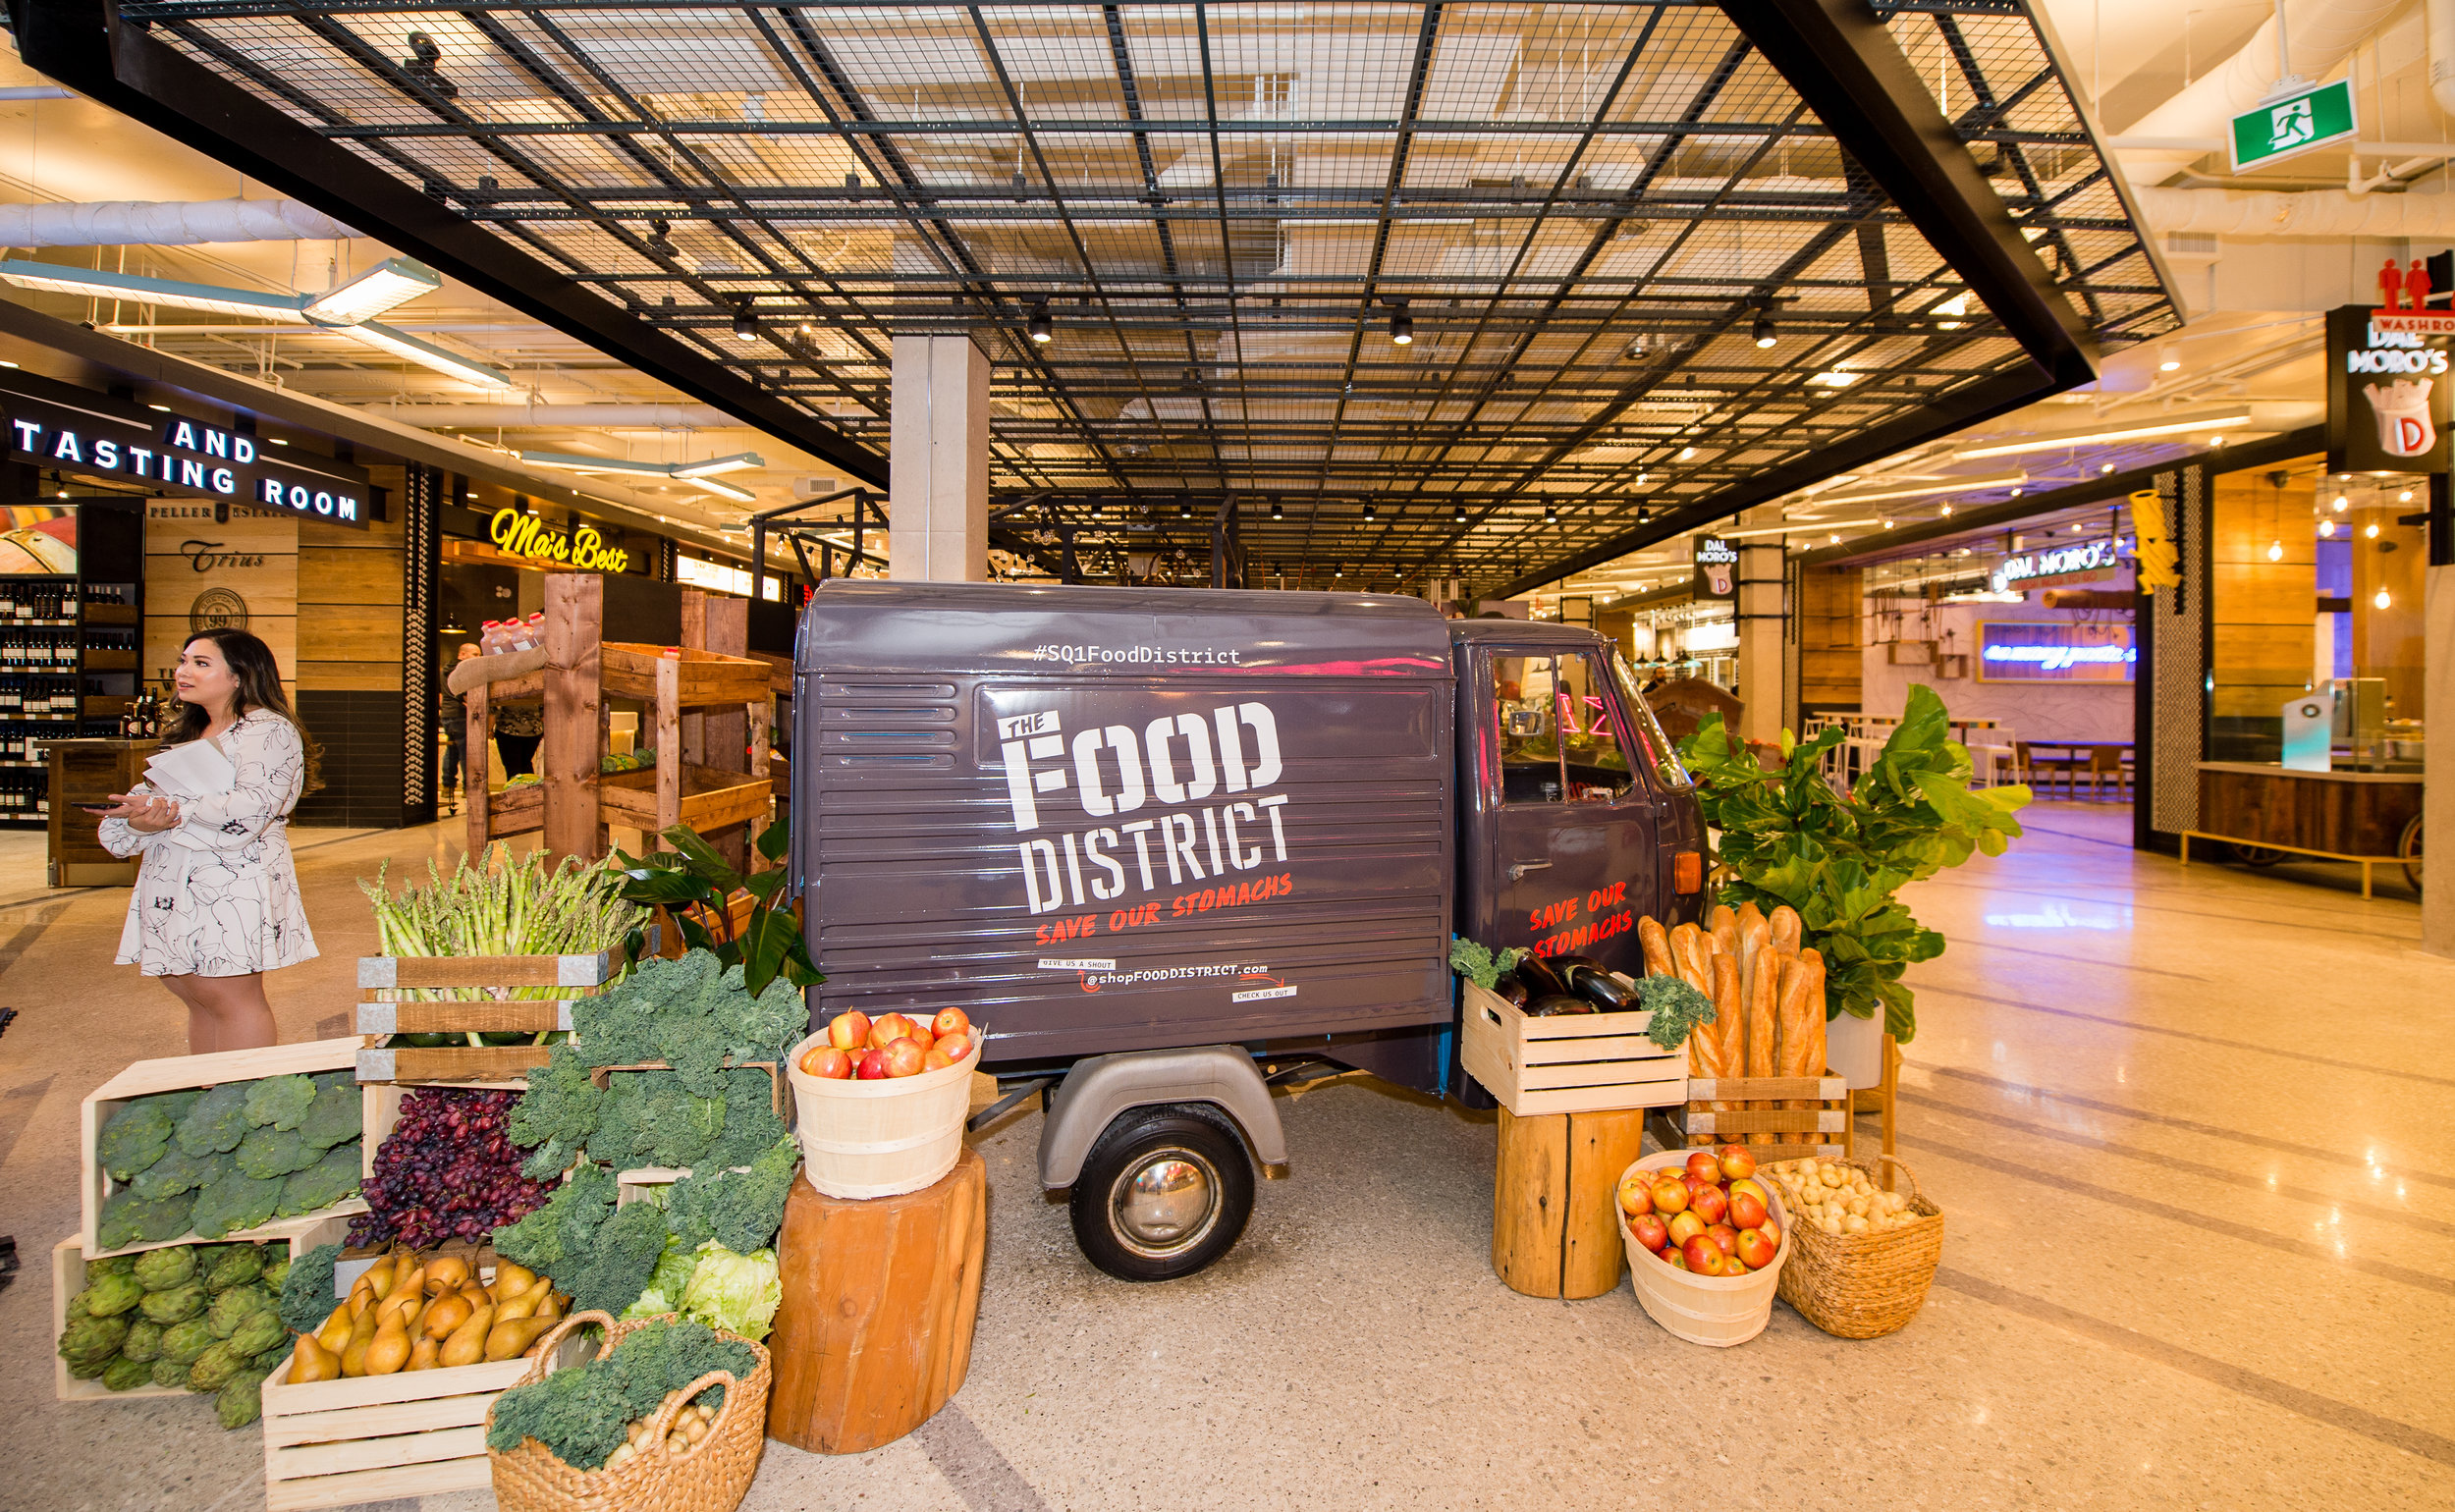 'District Market' at the front of the Food District, designed by Amal Aflak. PHOTO: TARA NOELLE